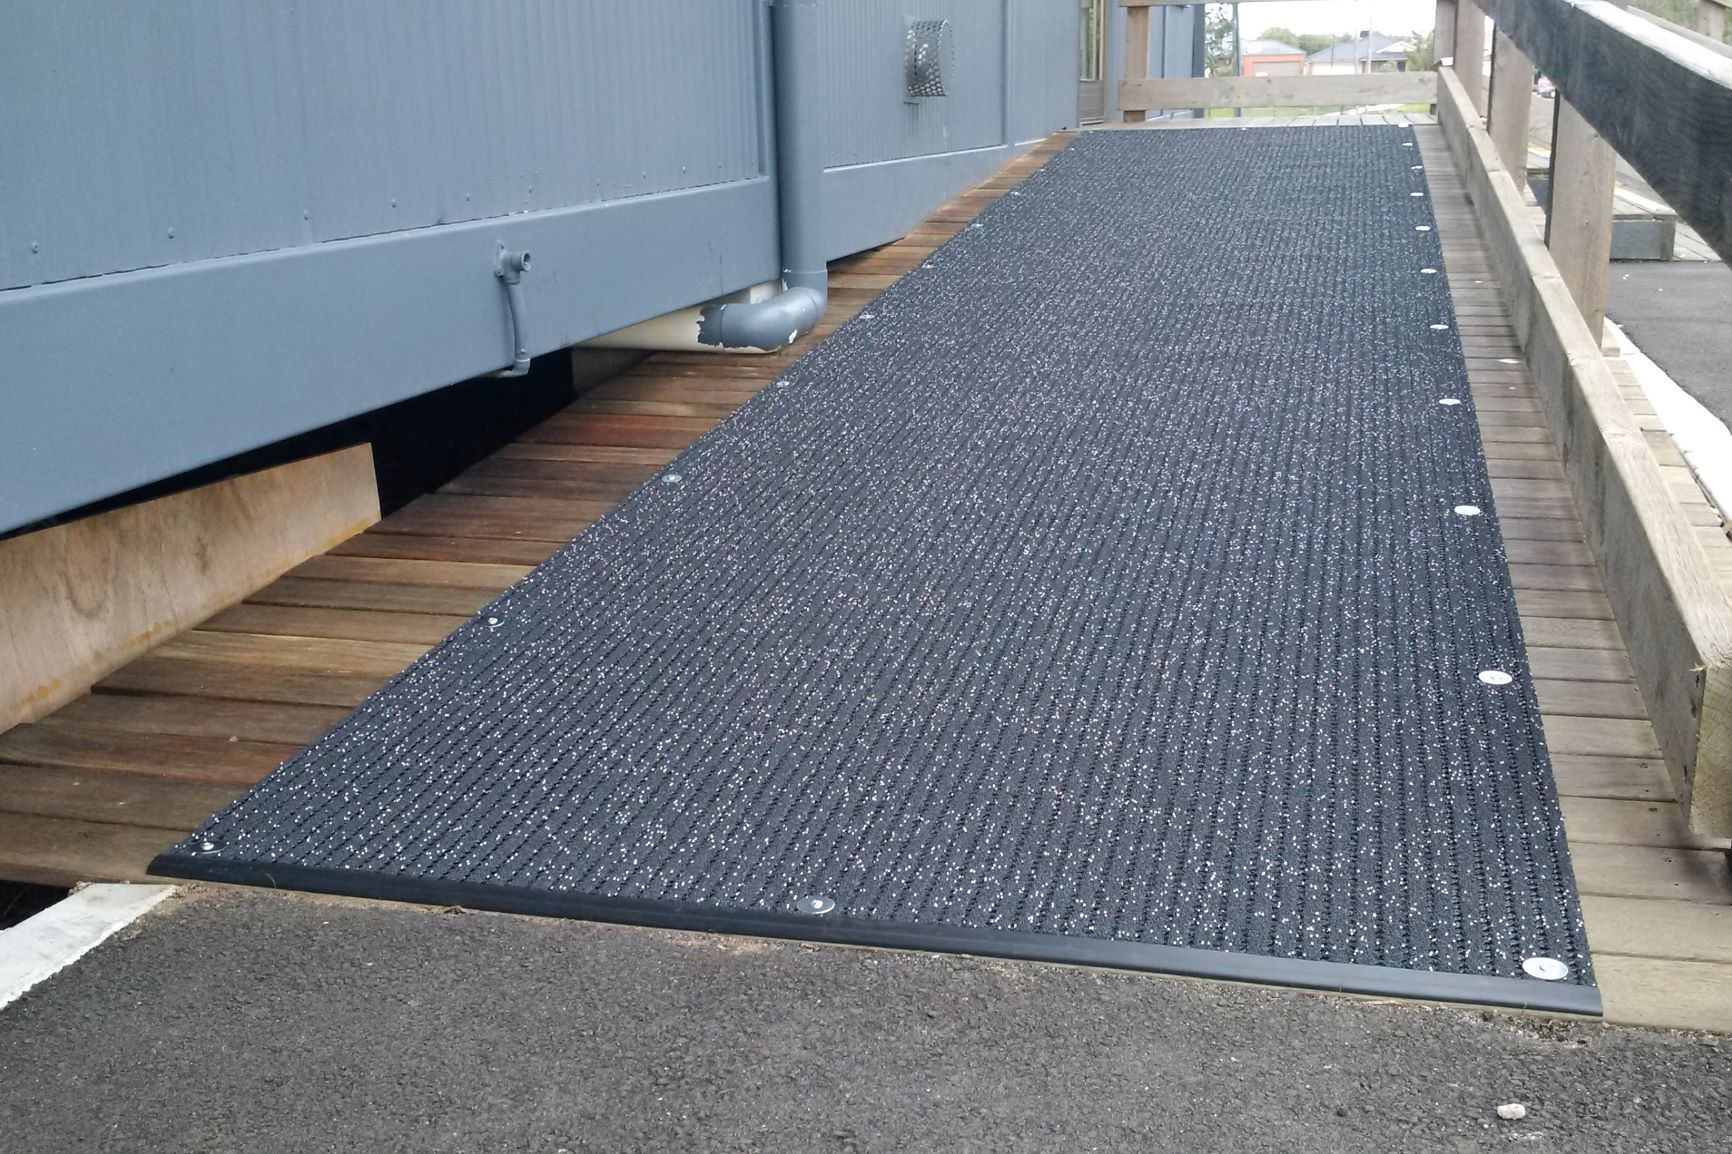 Variants Of Floor Mats That Are Suitable For Heavy Traffic Areas